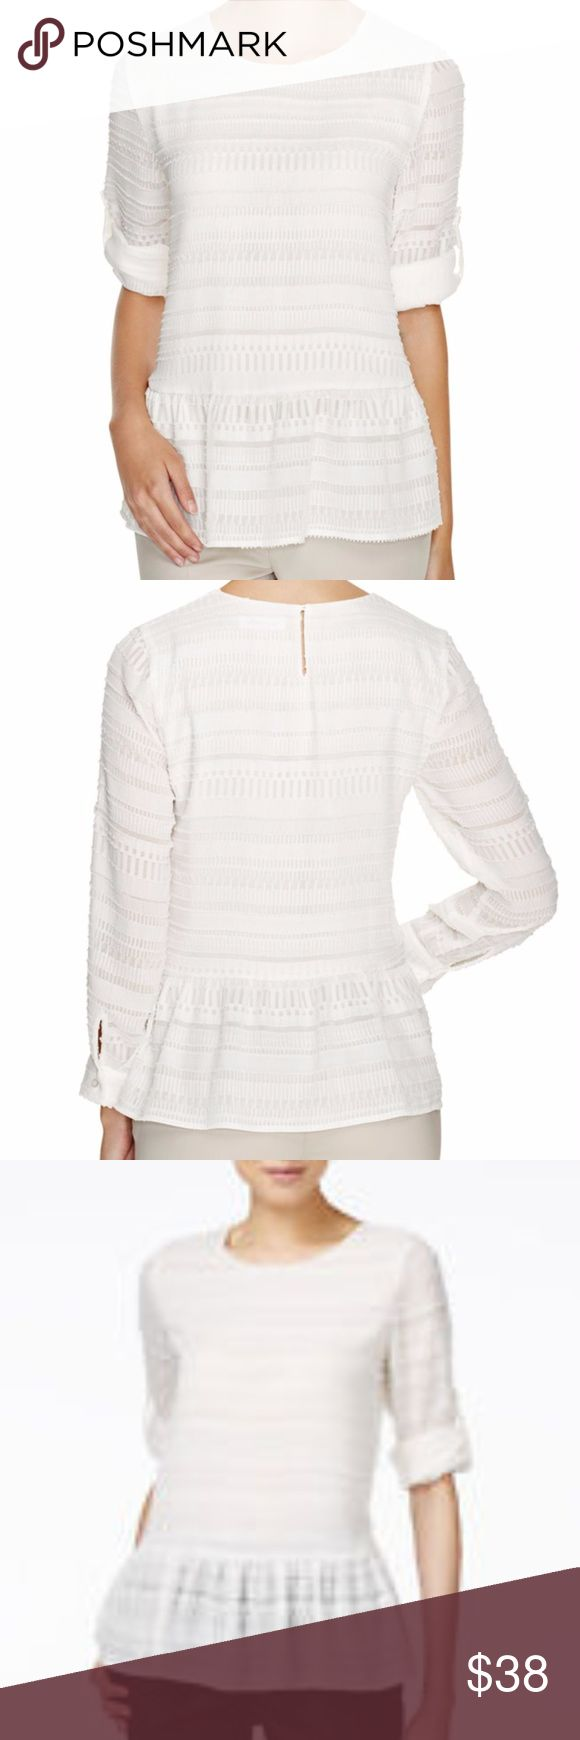 """Calvin Klein Textured Peplum Soft Womens Top This white, textured peplum top from Calvin Klein is super soft and classy look. This rop is somewhat see through and has roll sleeves. Perfectly paired with slacks or jeans.   Measurements:  Length: 26"""" Bust: 21.5"""" Sleeves: 22"""" natural length Calvin Klein Tops"""